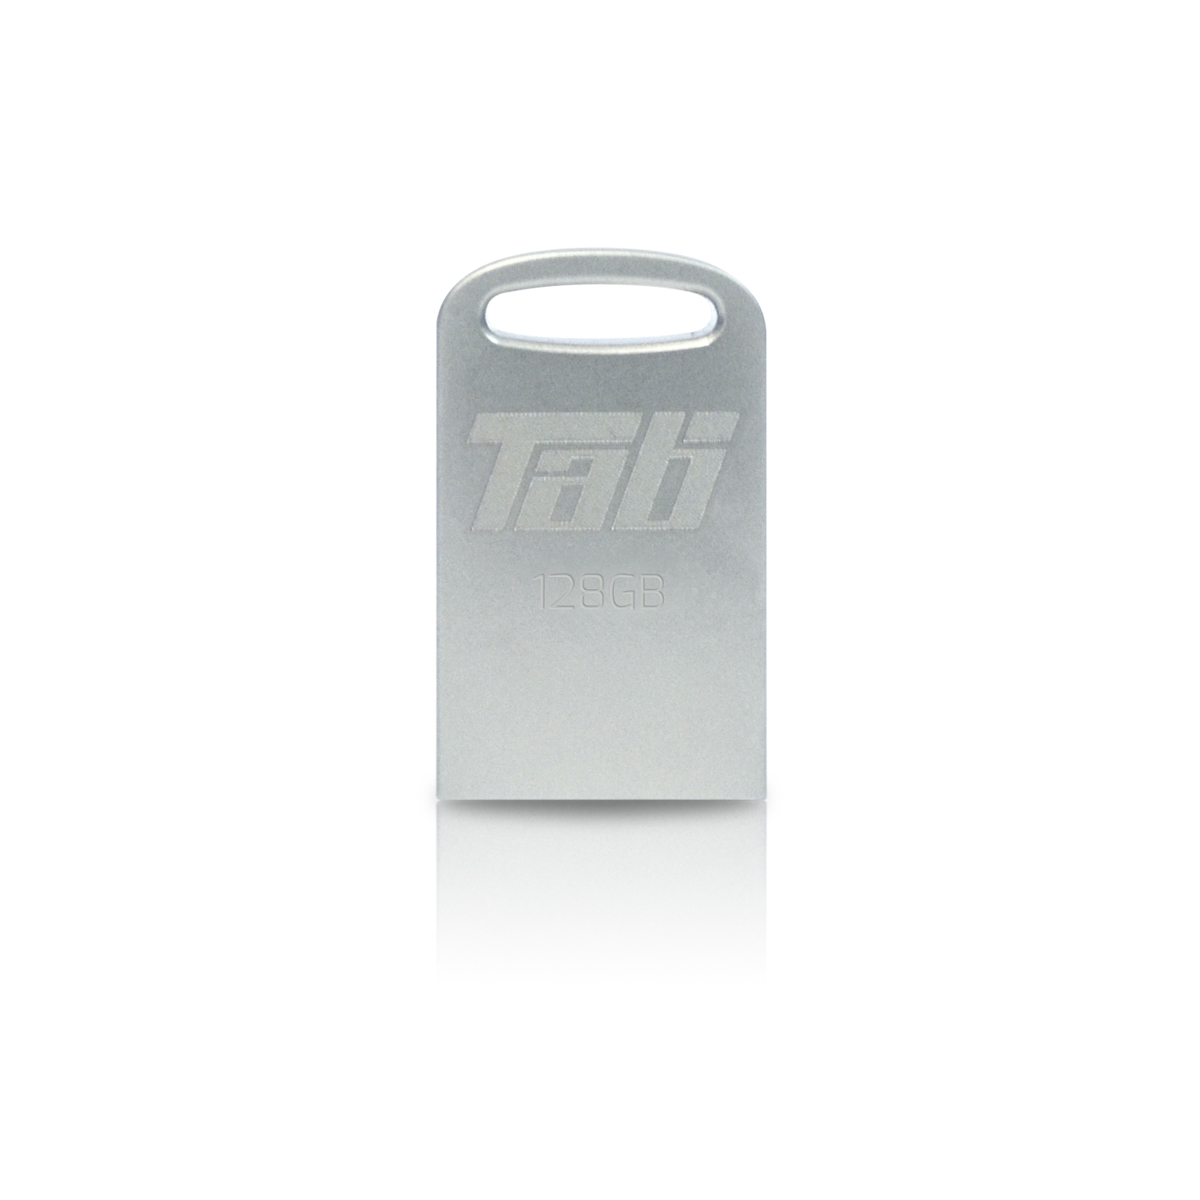 128GB Patriot Tab USB 3.1 110/20MBs